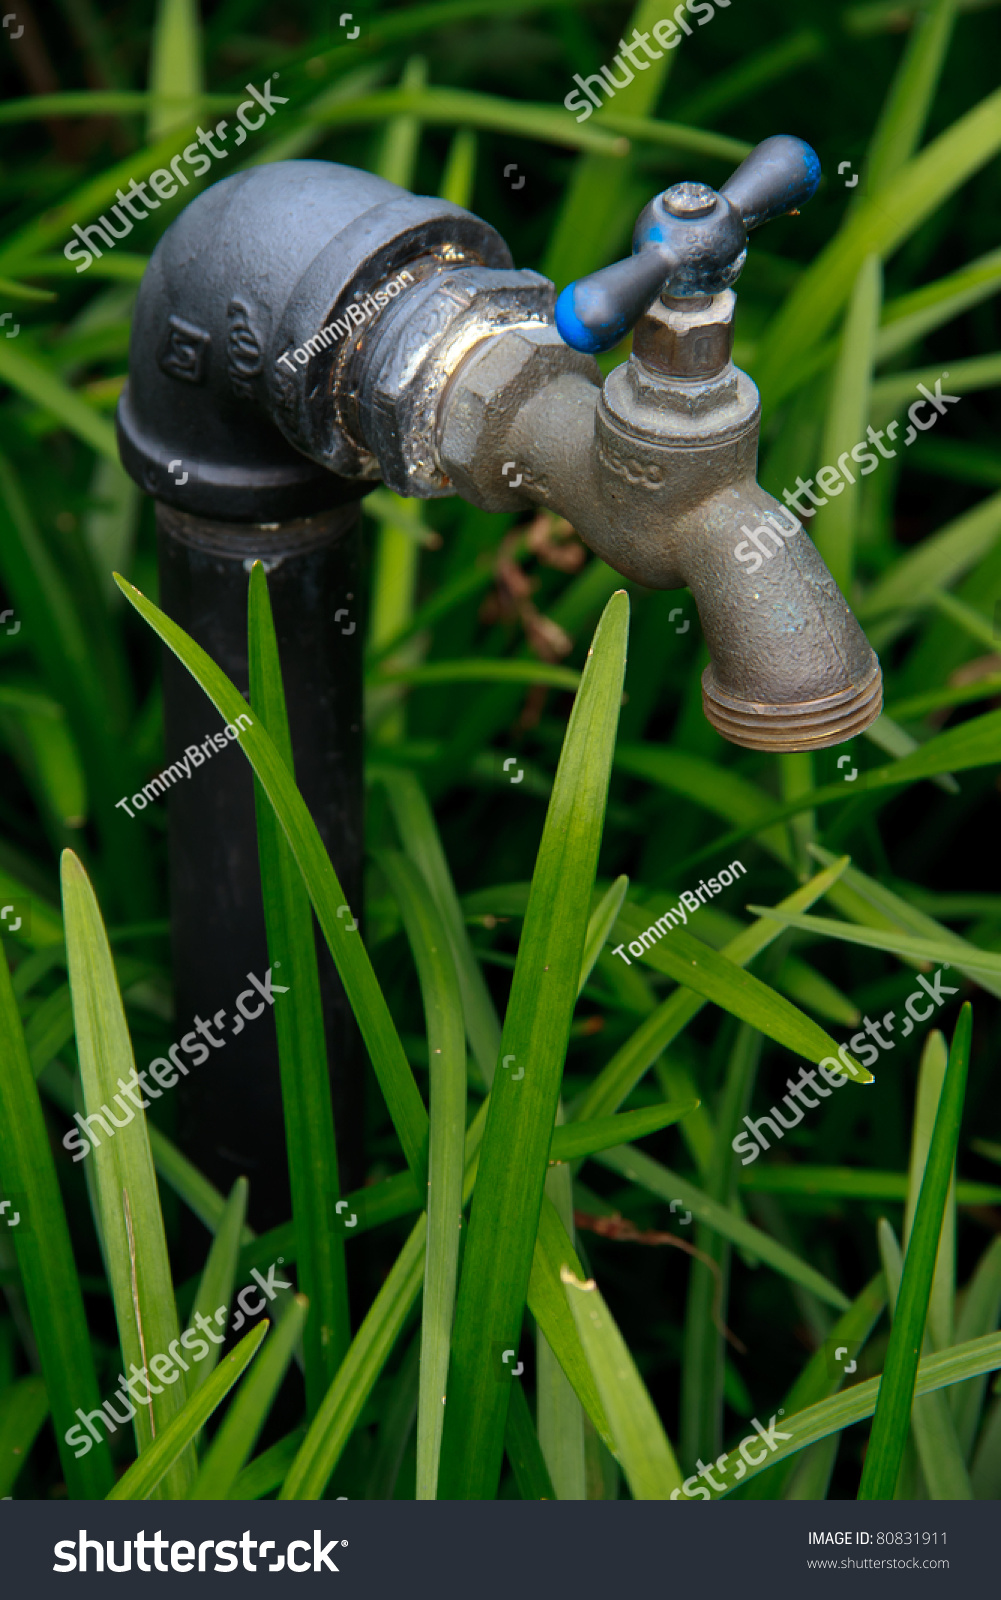 an outdoor water faucet used to attach a hose to for outdoor watering needs stock photo 80831911. Black Bedroom Furniture Sets. Home Design Ideas